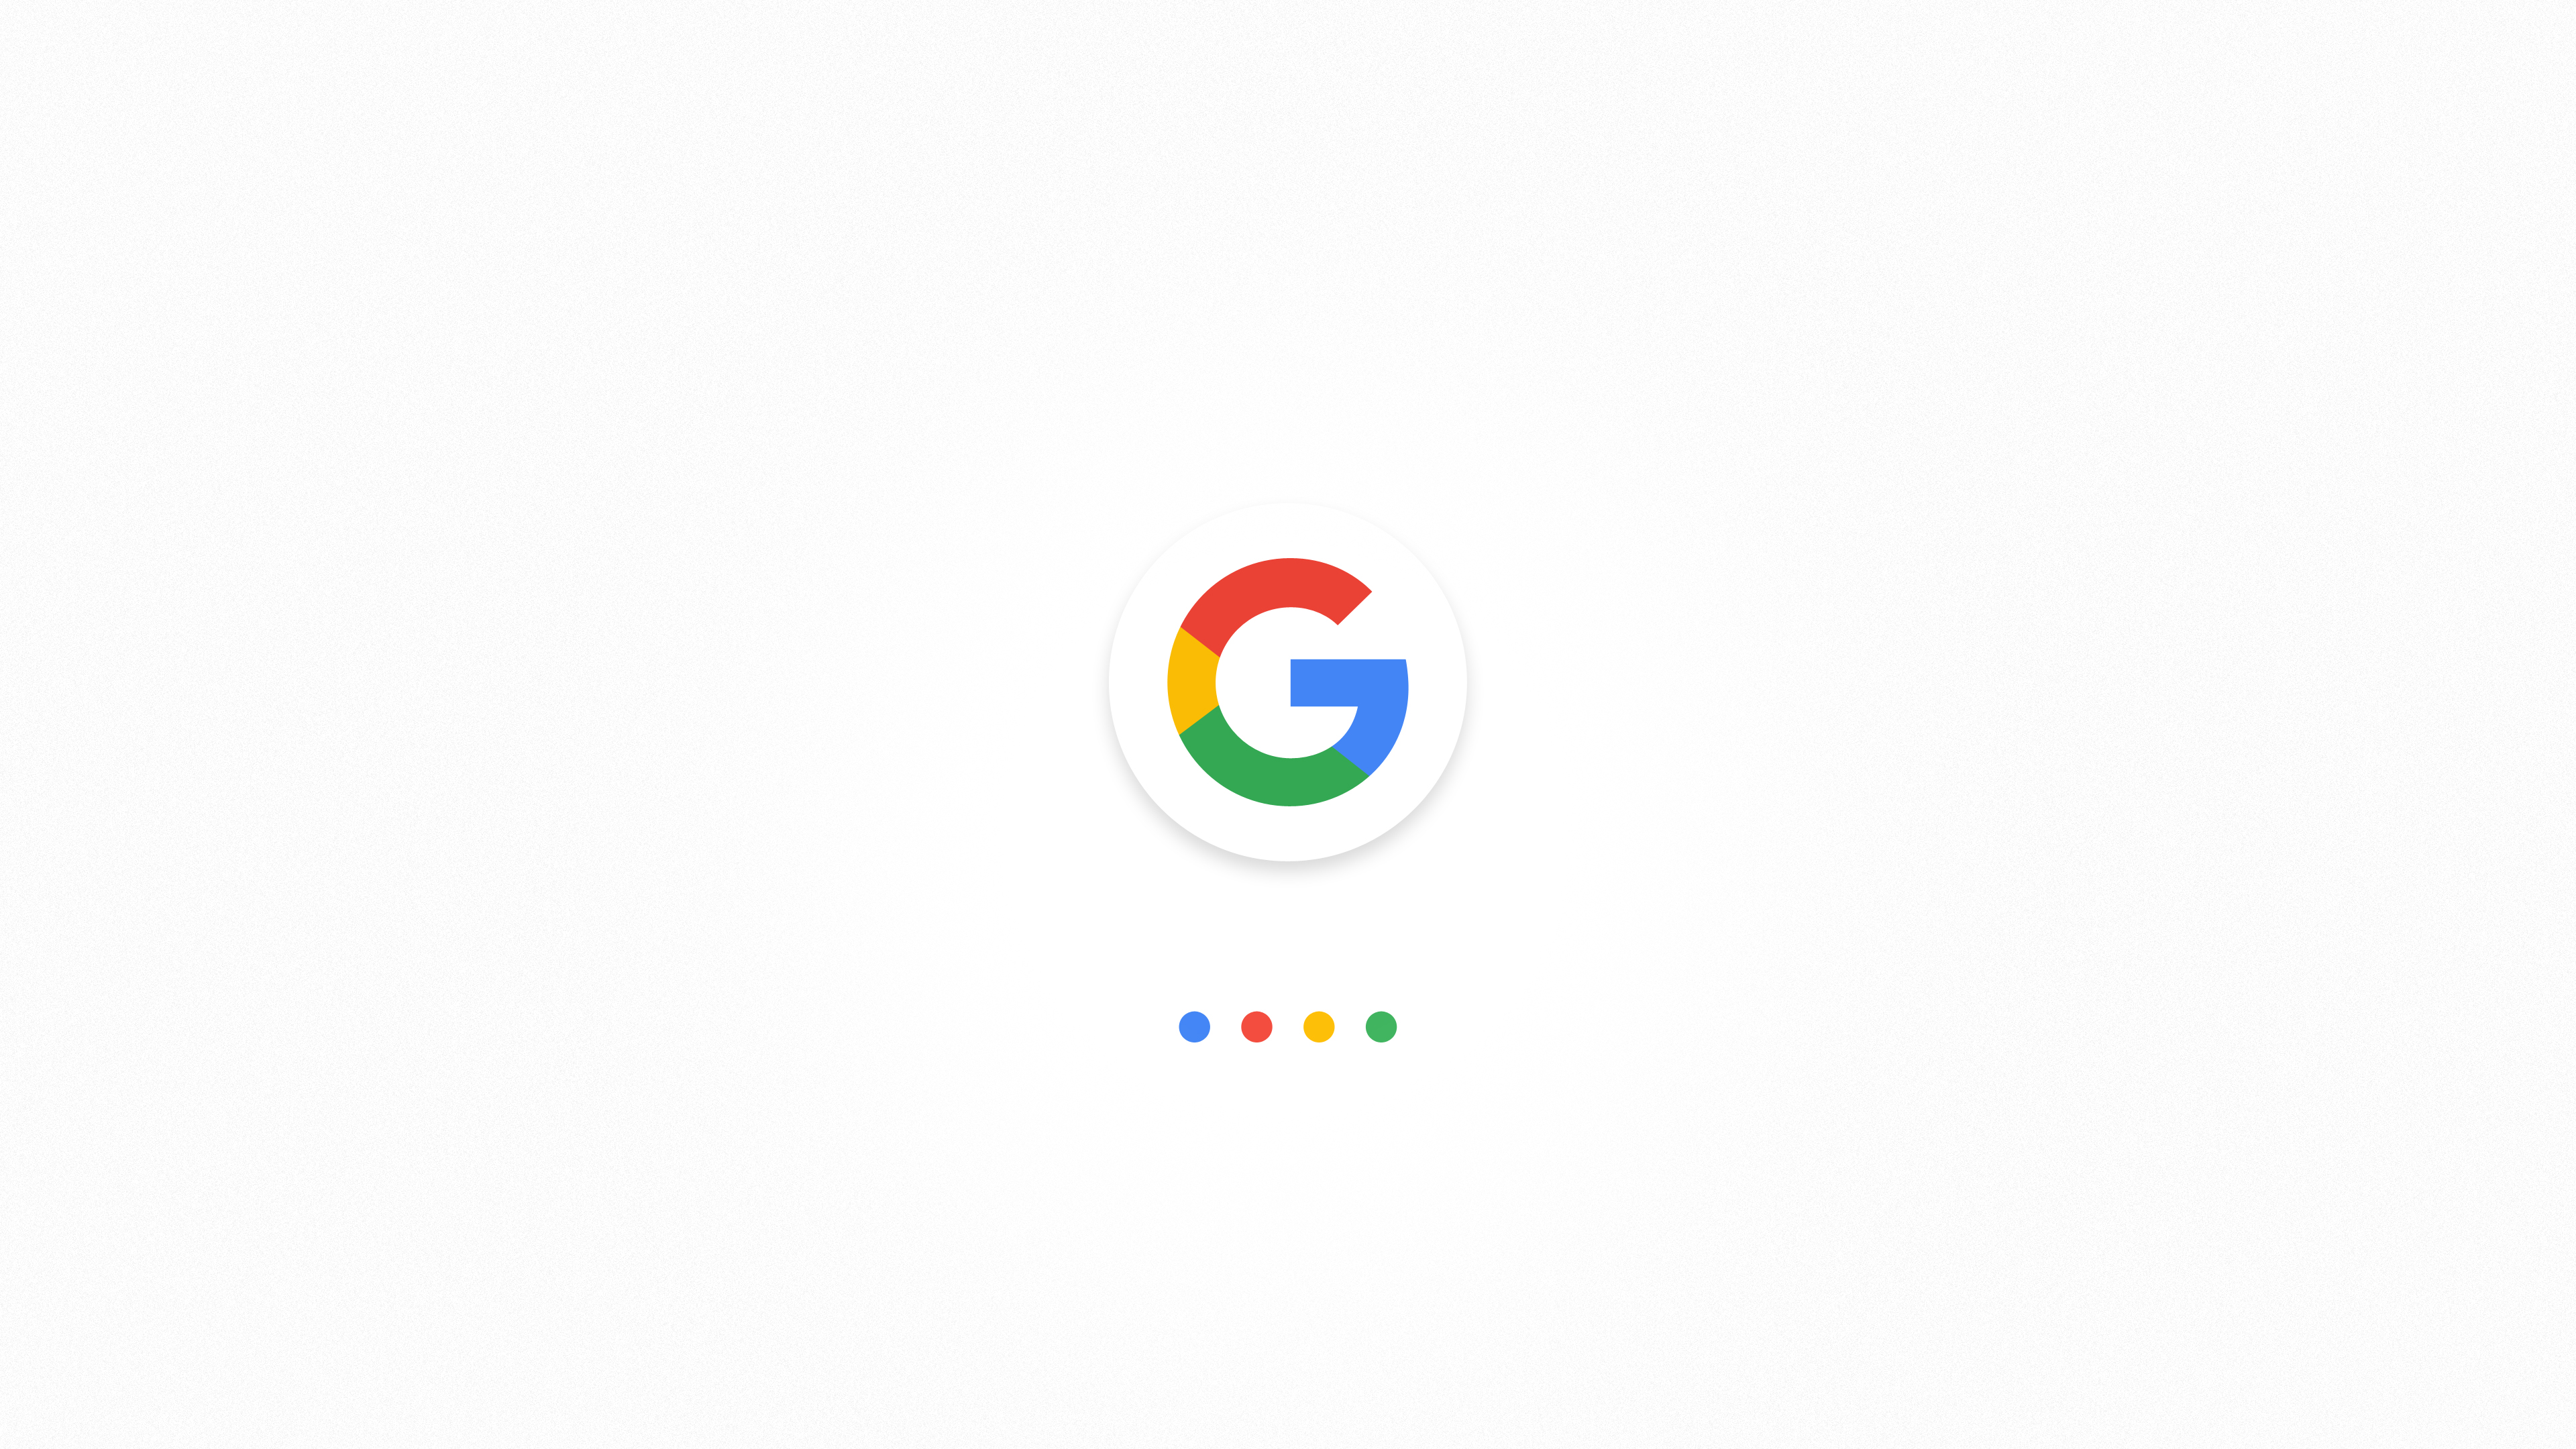 4K Google G Minimalistic Wallpaper By JovicaSmileski On